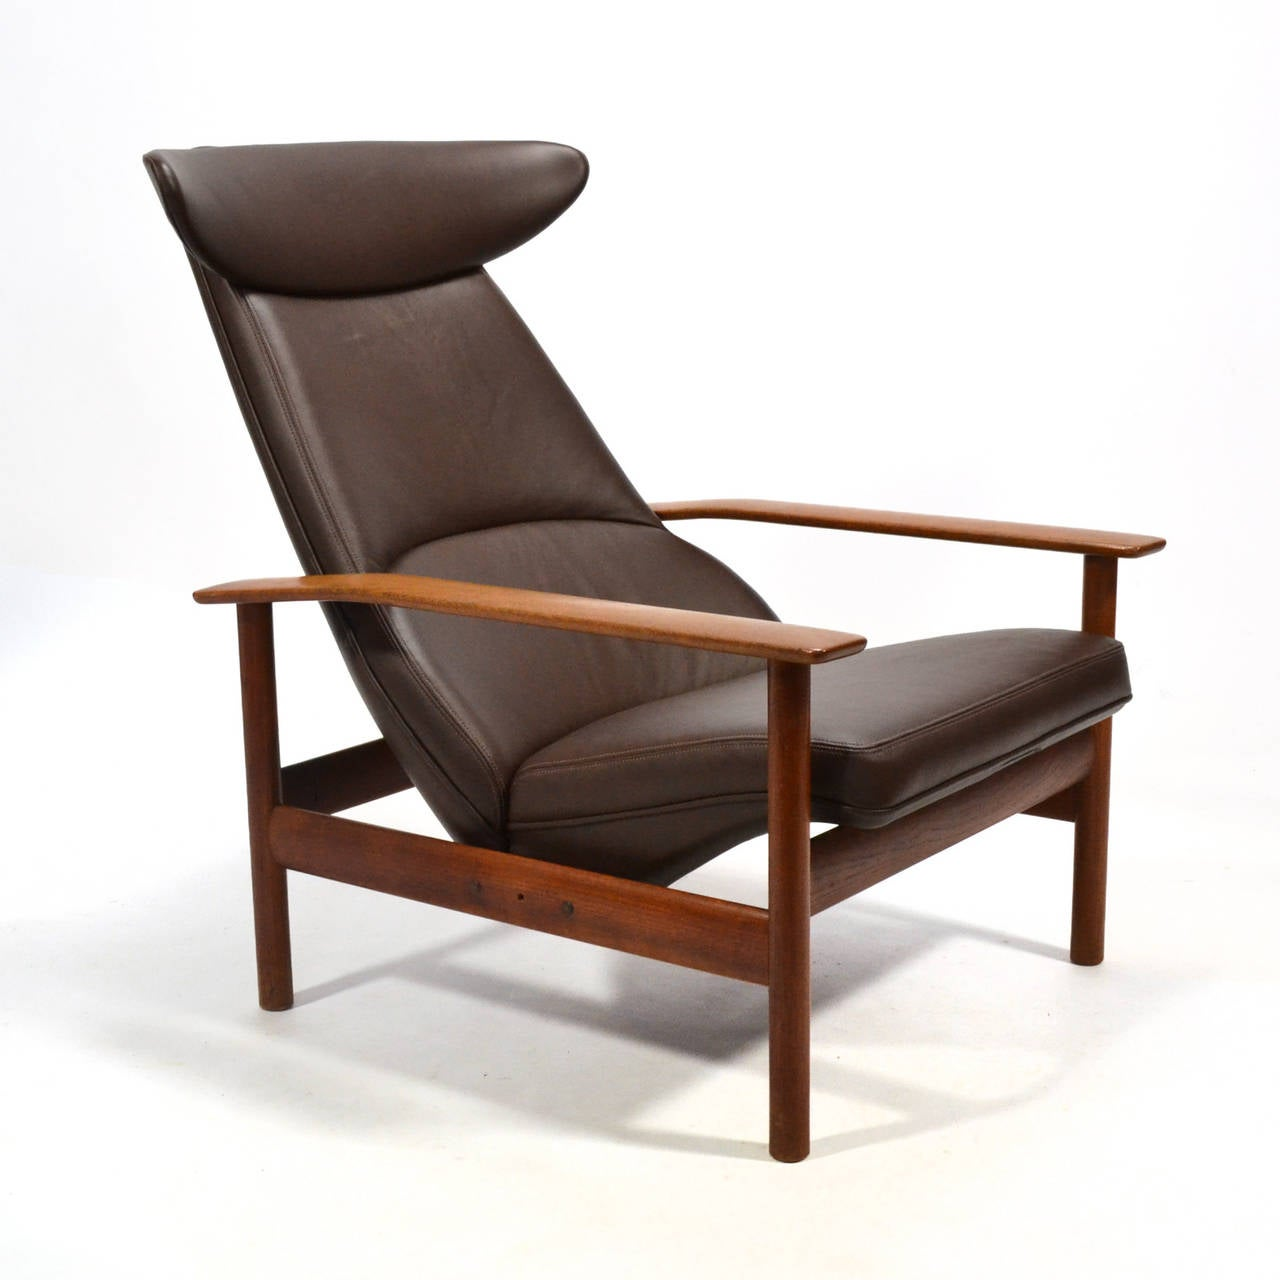 This exceptional lounge chair by Sven Ivar Dysthe for Dokka Mobler is a handsome, powerful design. With a frame of solid teak, the seat features a horn-shaped headrest (which reminds us of Hans Wegner's ox chair) and adjusts to two sitting